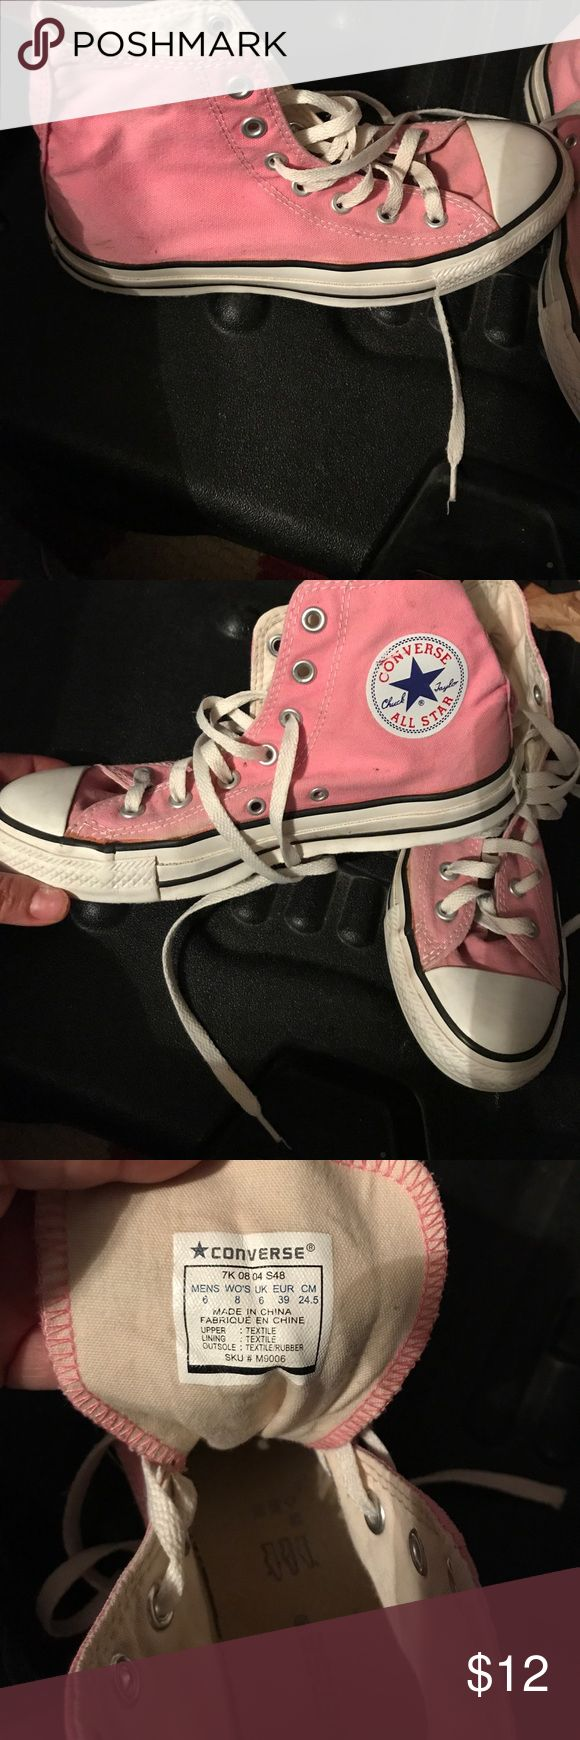 Converse Pink high top converse in good used condition. Size 8 women's Converse Shoes Sneakers